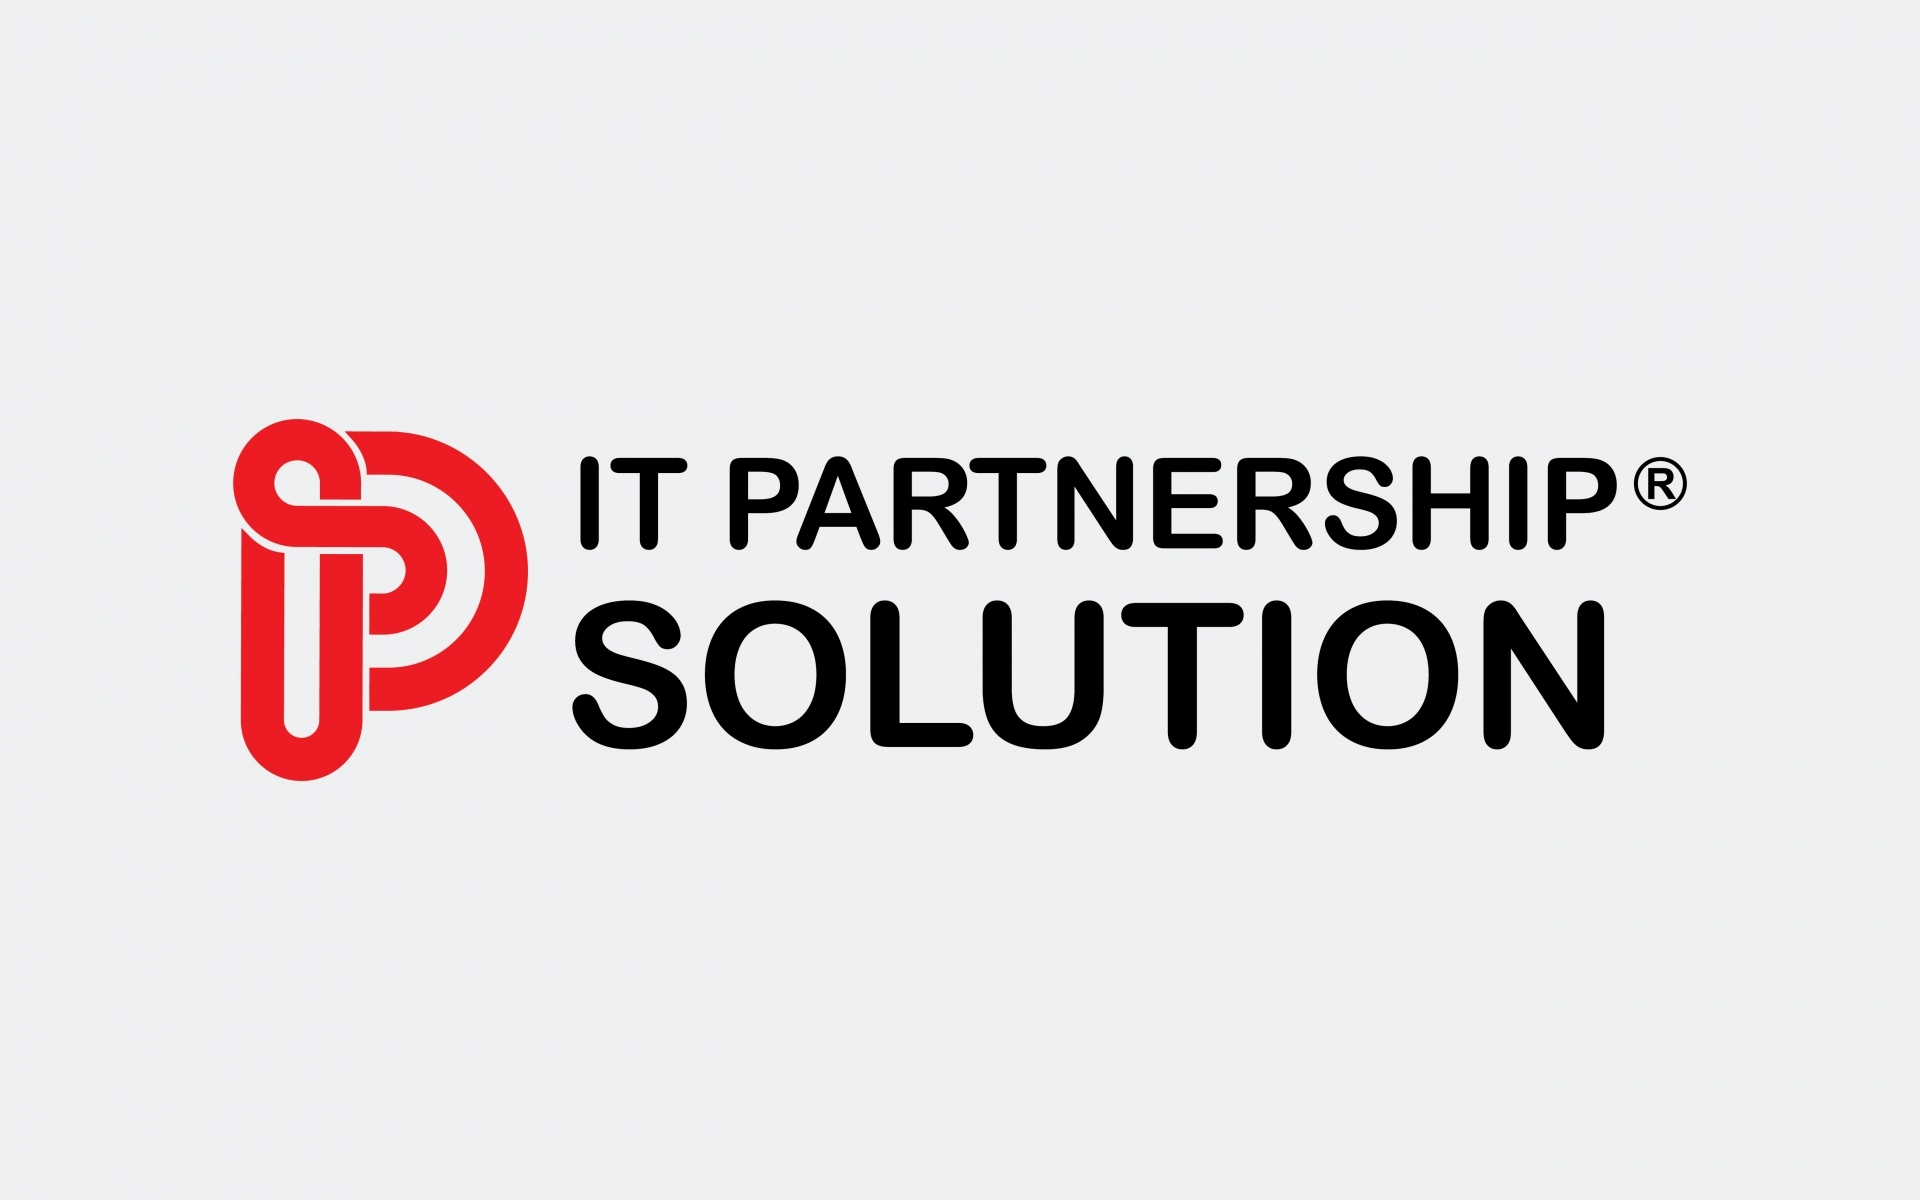 "<a href=""#"" target=""_blank"">IT Partnership Solution</a>"